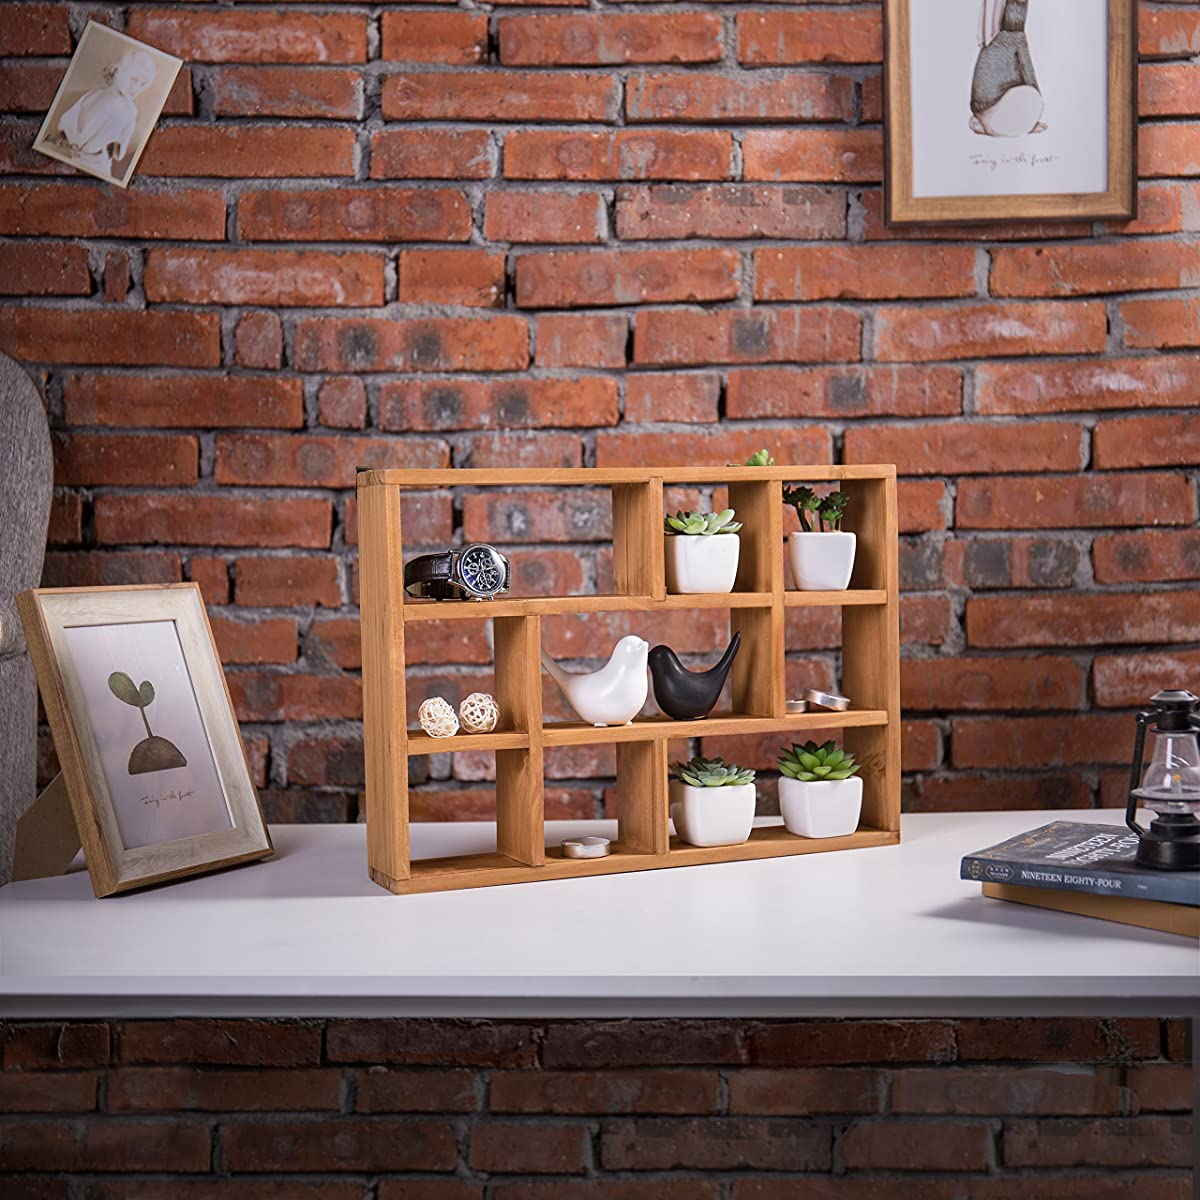 15 Inch Wall Mount (Vertical or Horizonal) 9 Slot Rustic Wood Floating Shelves / Freestanding Shadow Box